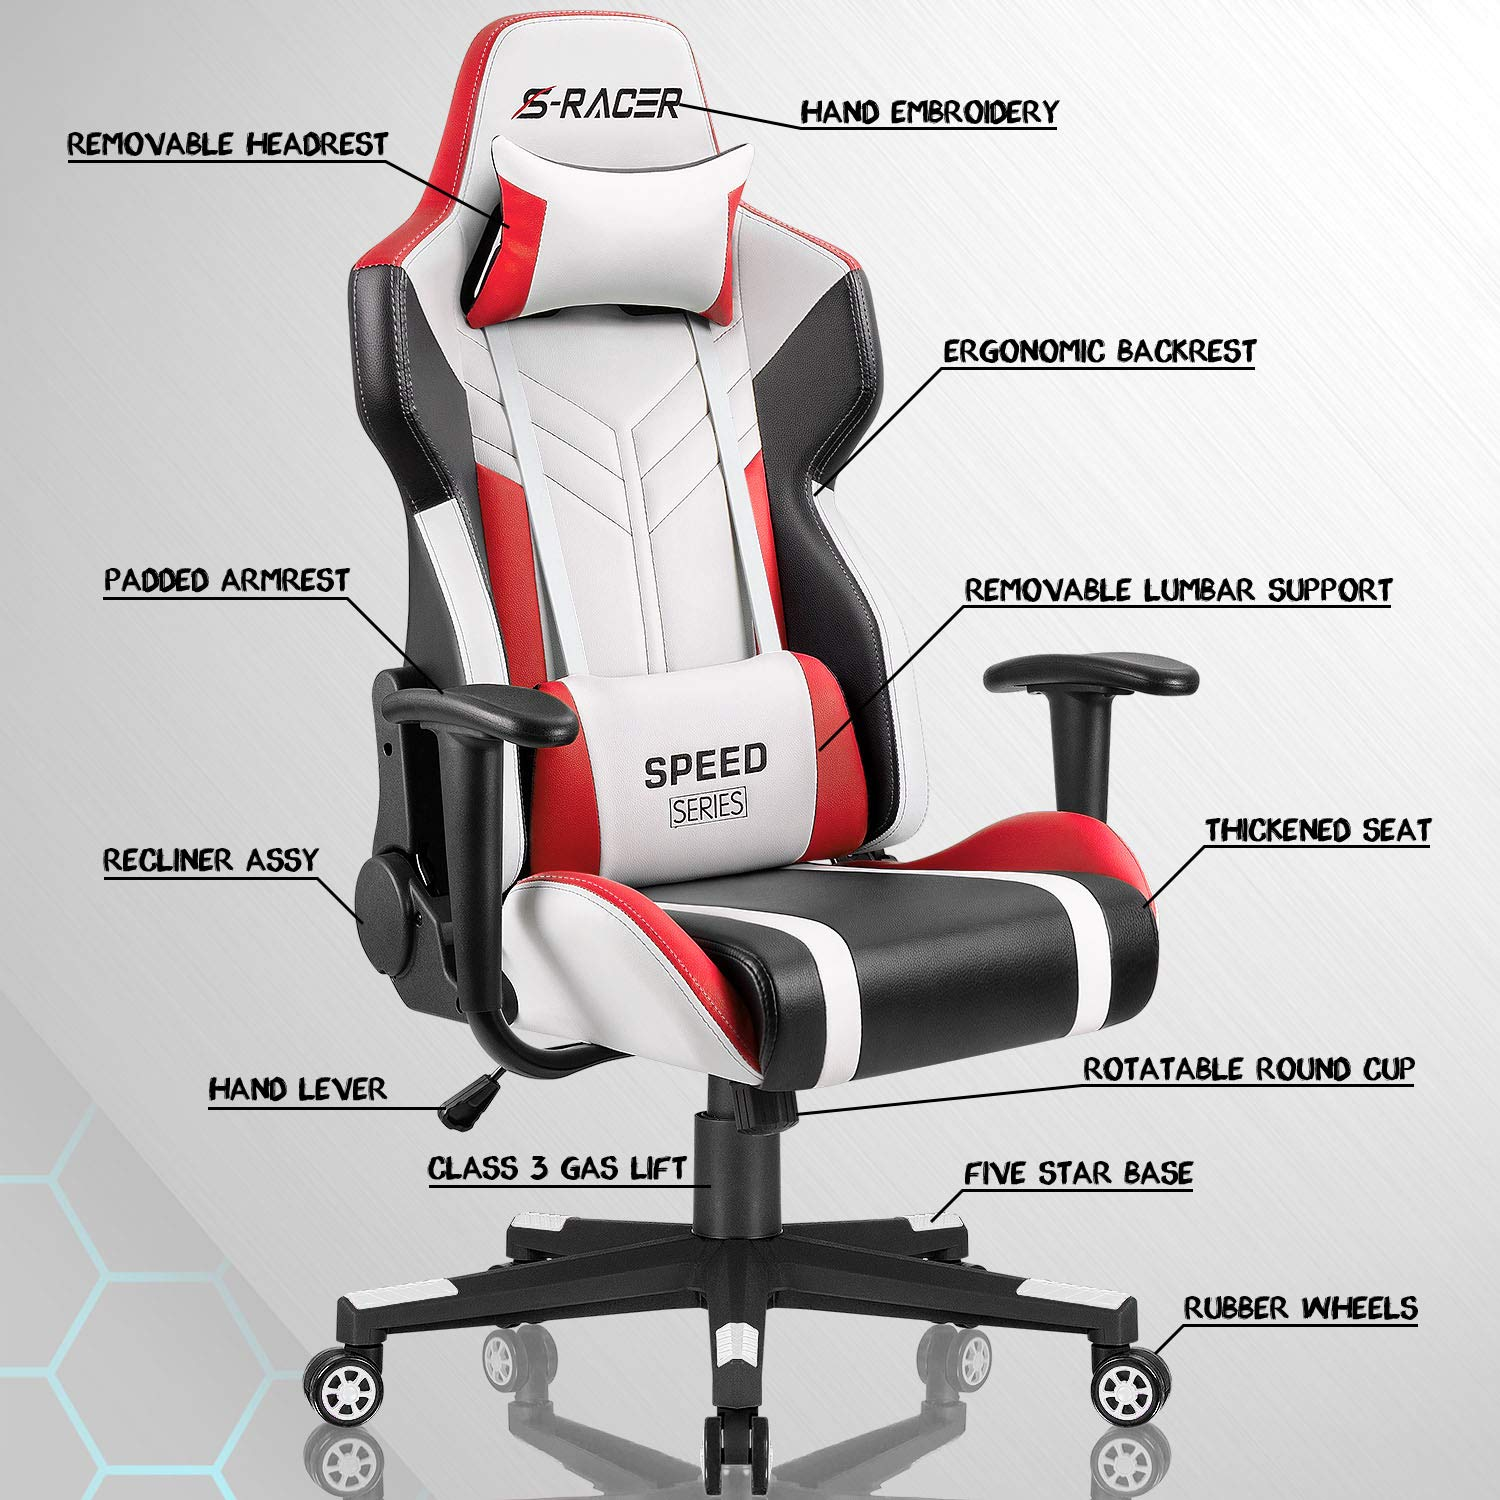 Homall Gaming Chair Racing Style High-Back PU Leather Office Chair Computer Desk Chair Executive and Ergonomic Swivel Chair with Headrest and Lumbar Support (White/Red) by Homall (Image #7)